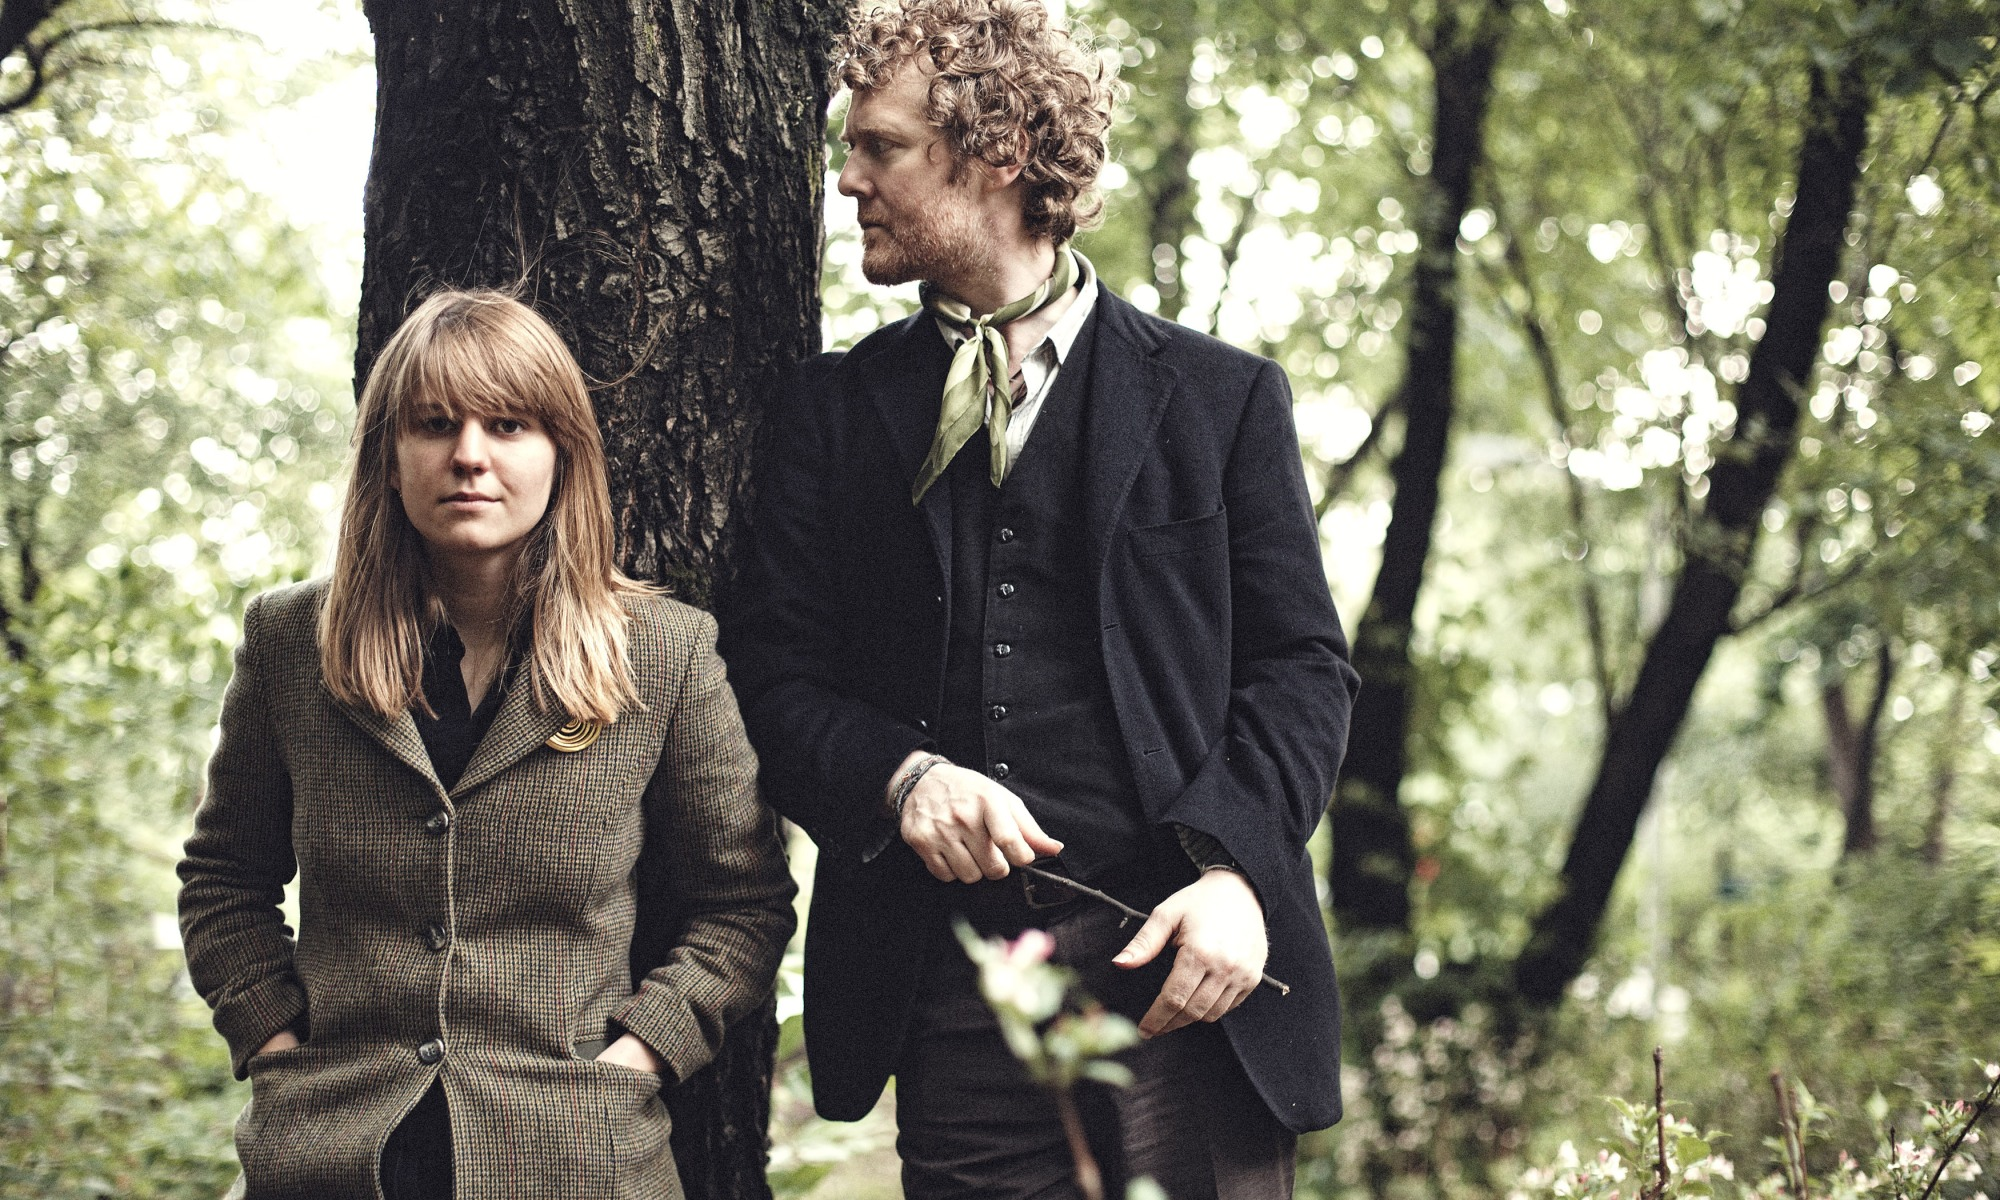 The Swell Season Top 5 Music Obsessions